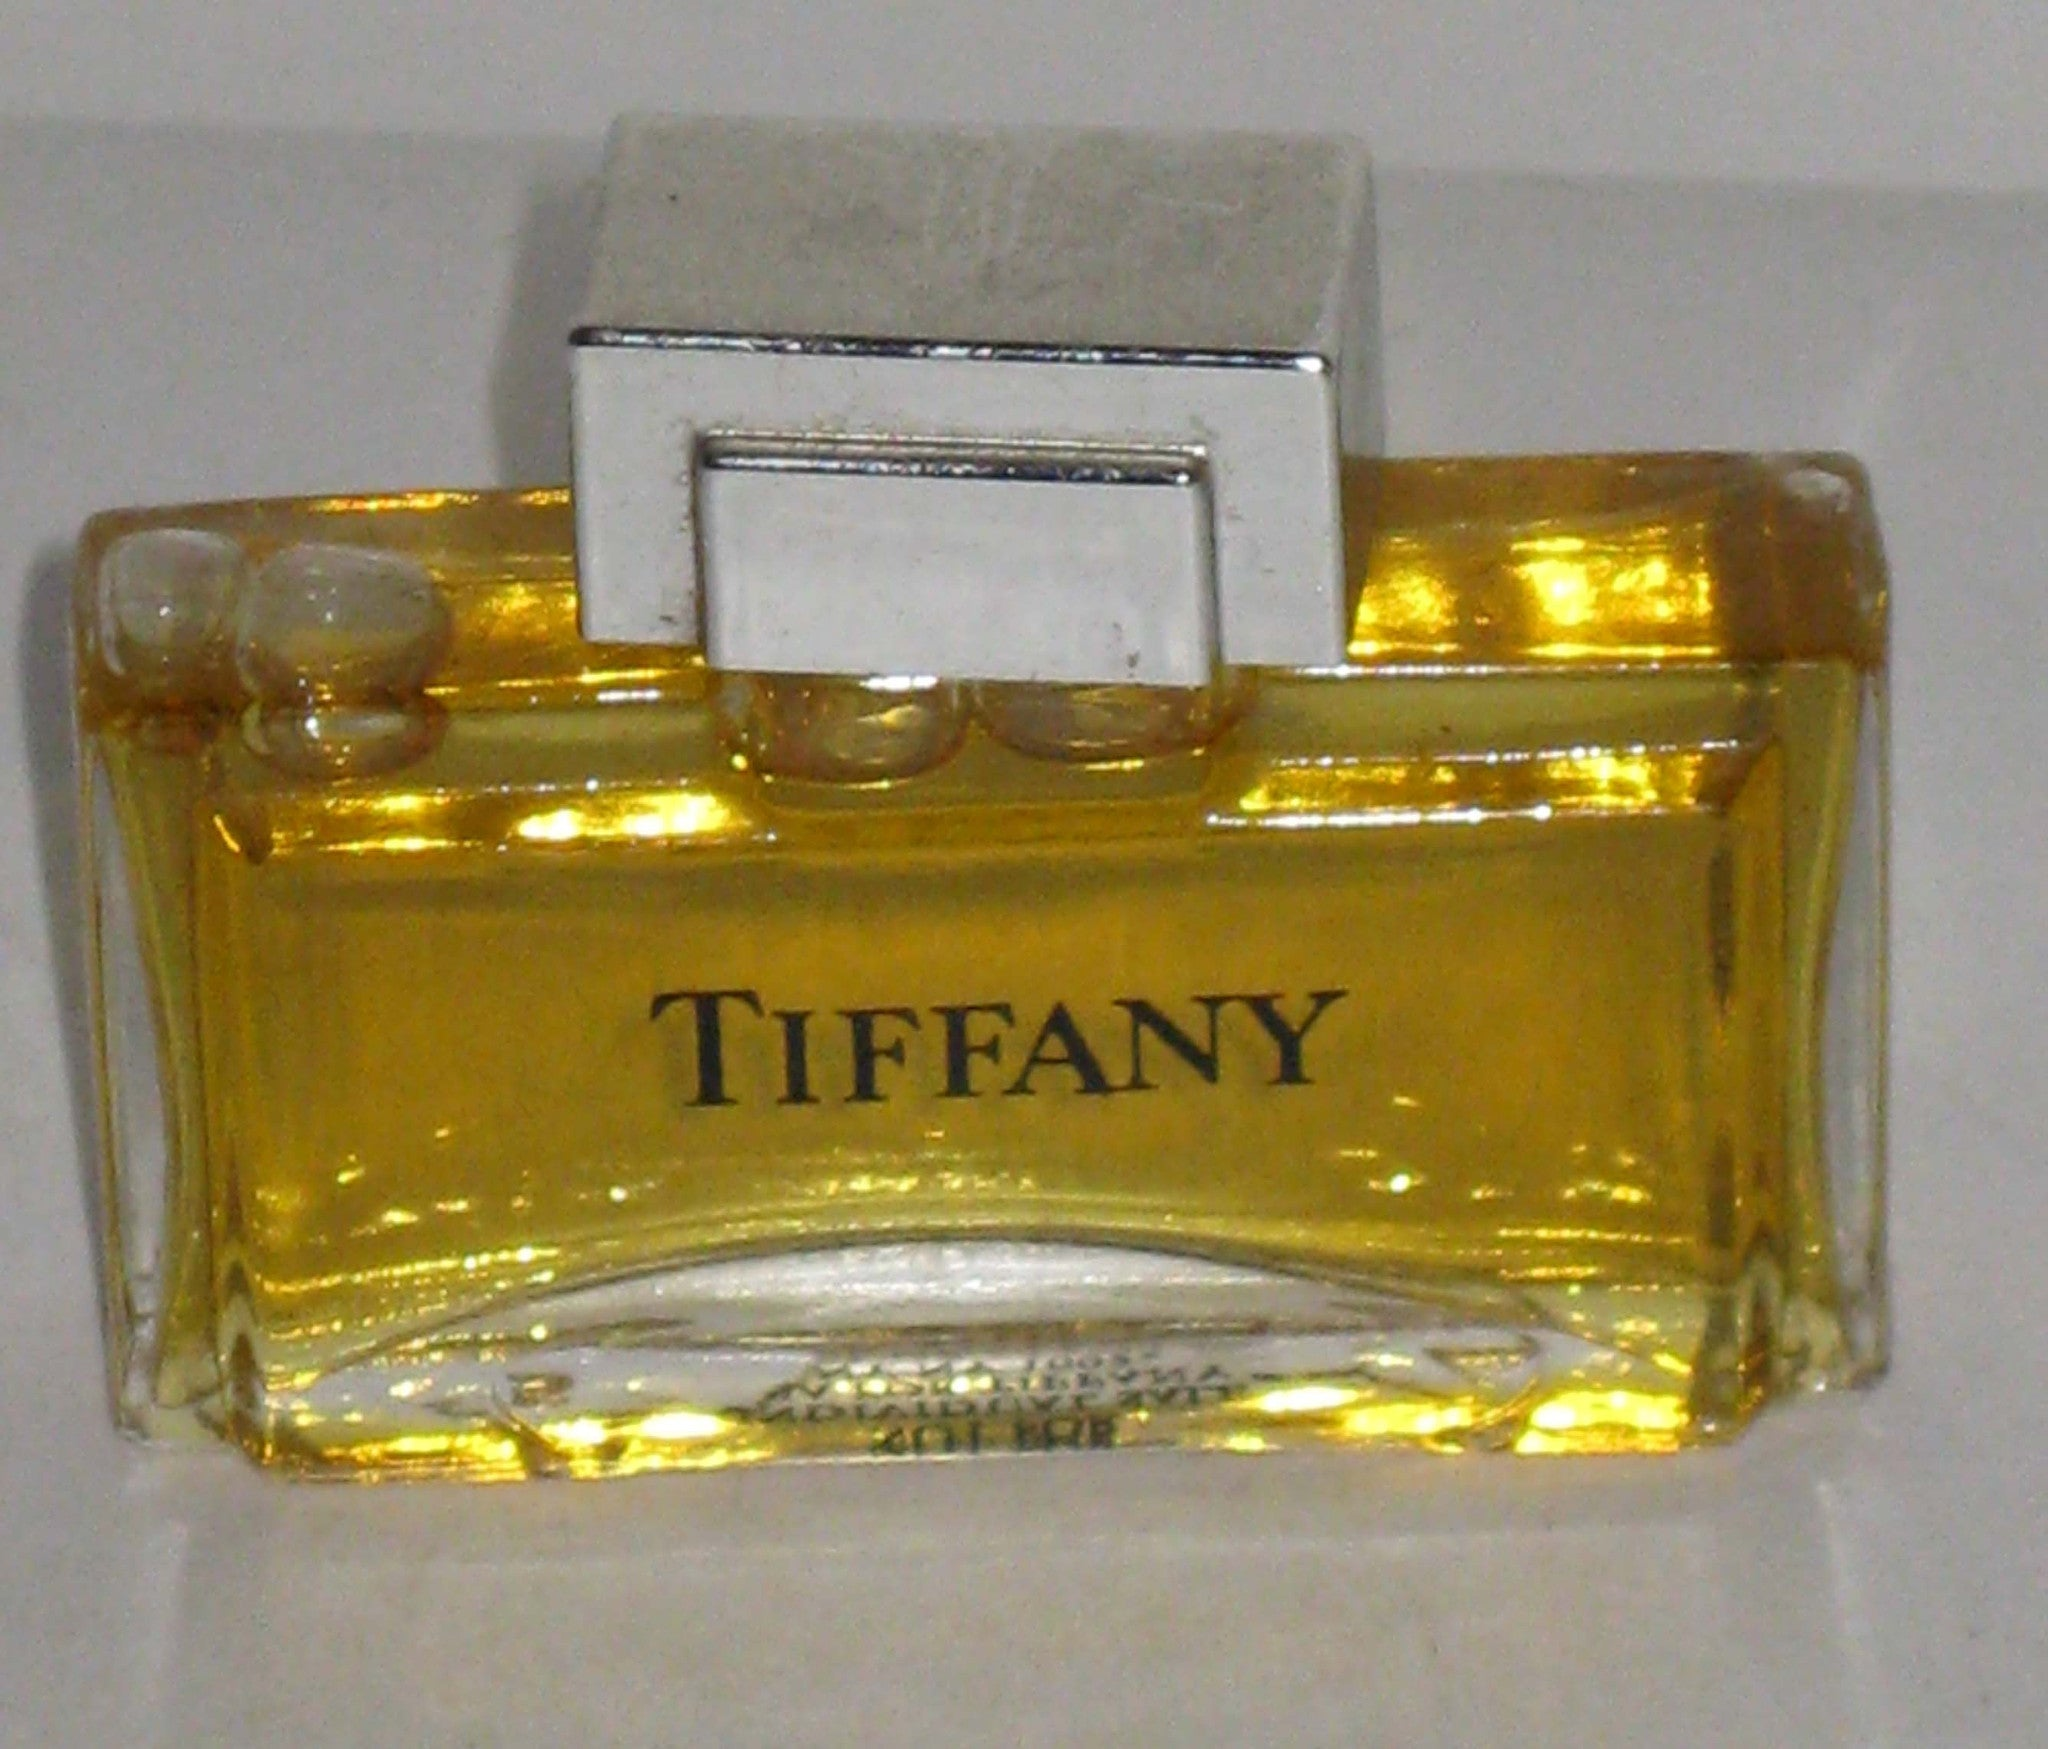 Tiffany Perfume Mini